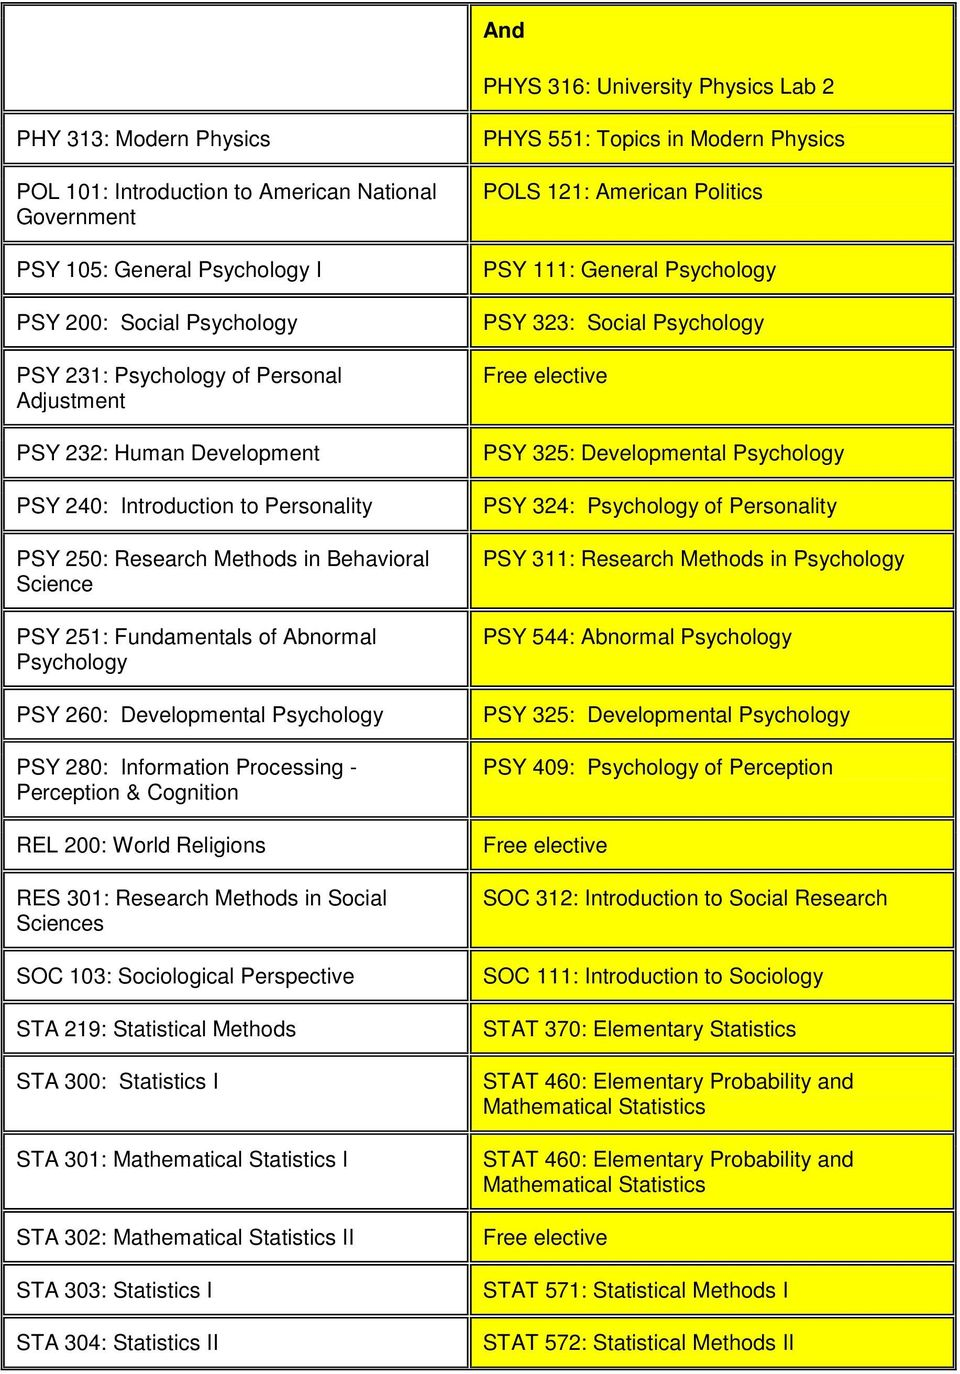 Psychology PSY 280: Information Processing - Perception & Cognition REL 200: World Religions RES 301: Research Methods in Social Sciences SOC 103: Sociological Perspective STA 219: Statistical